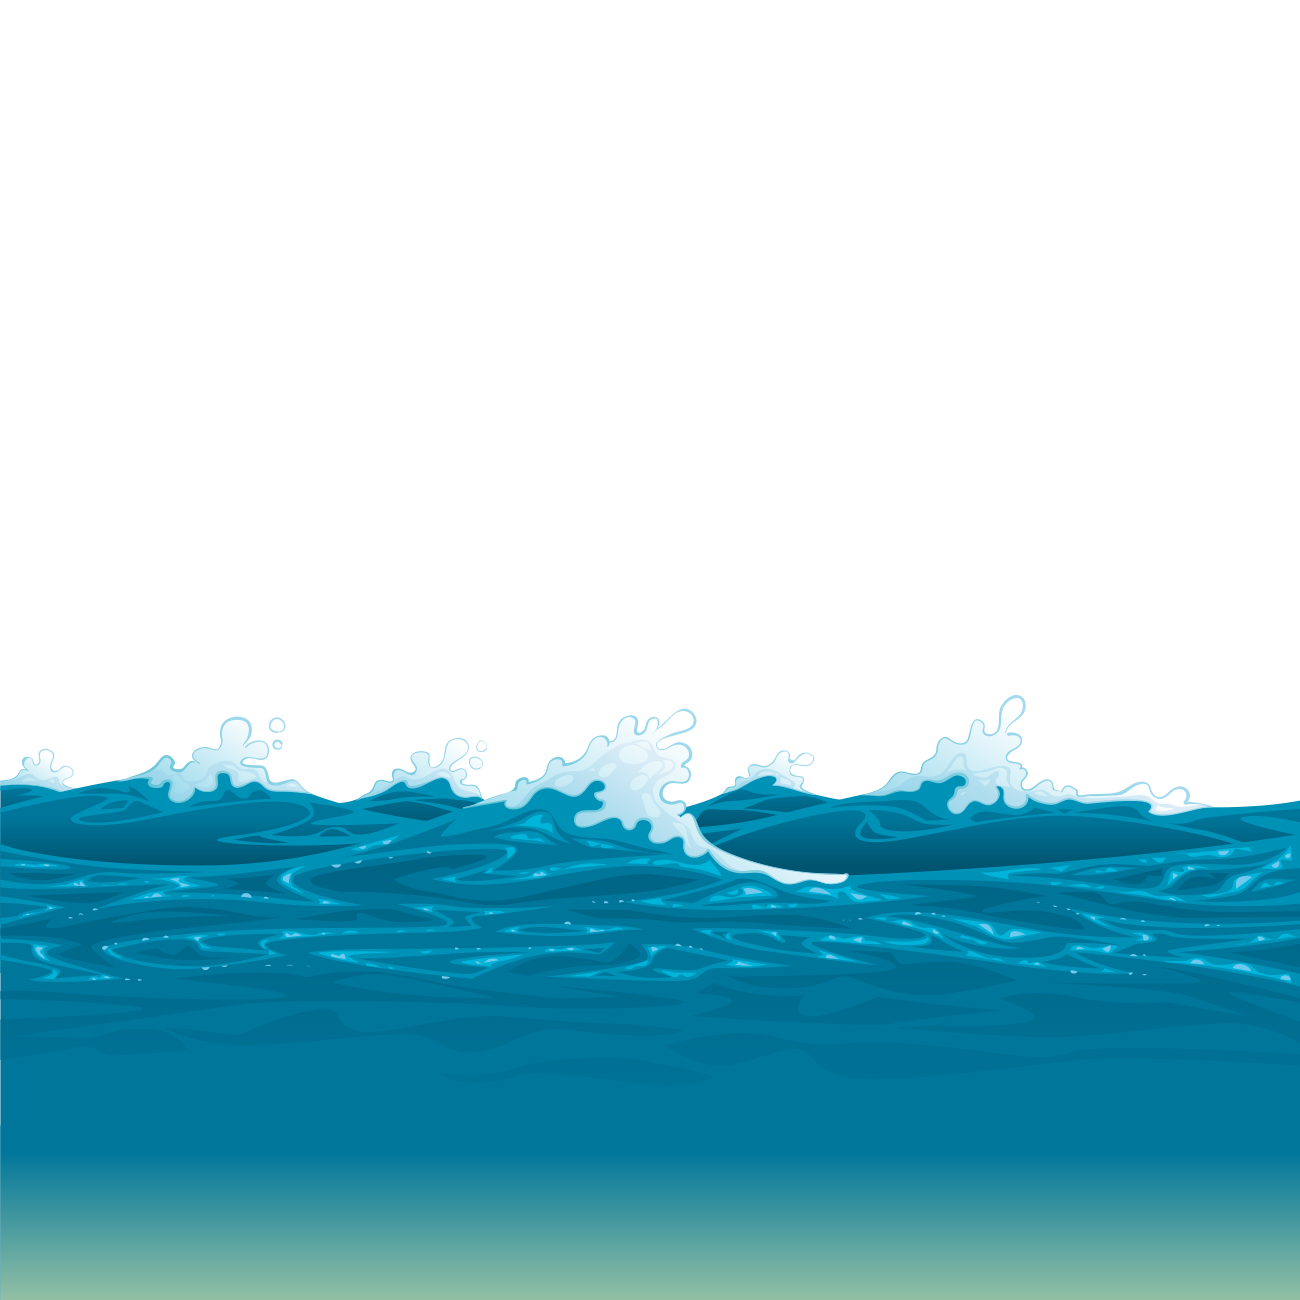 Ocean Sea level Water resources Wallpaper.